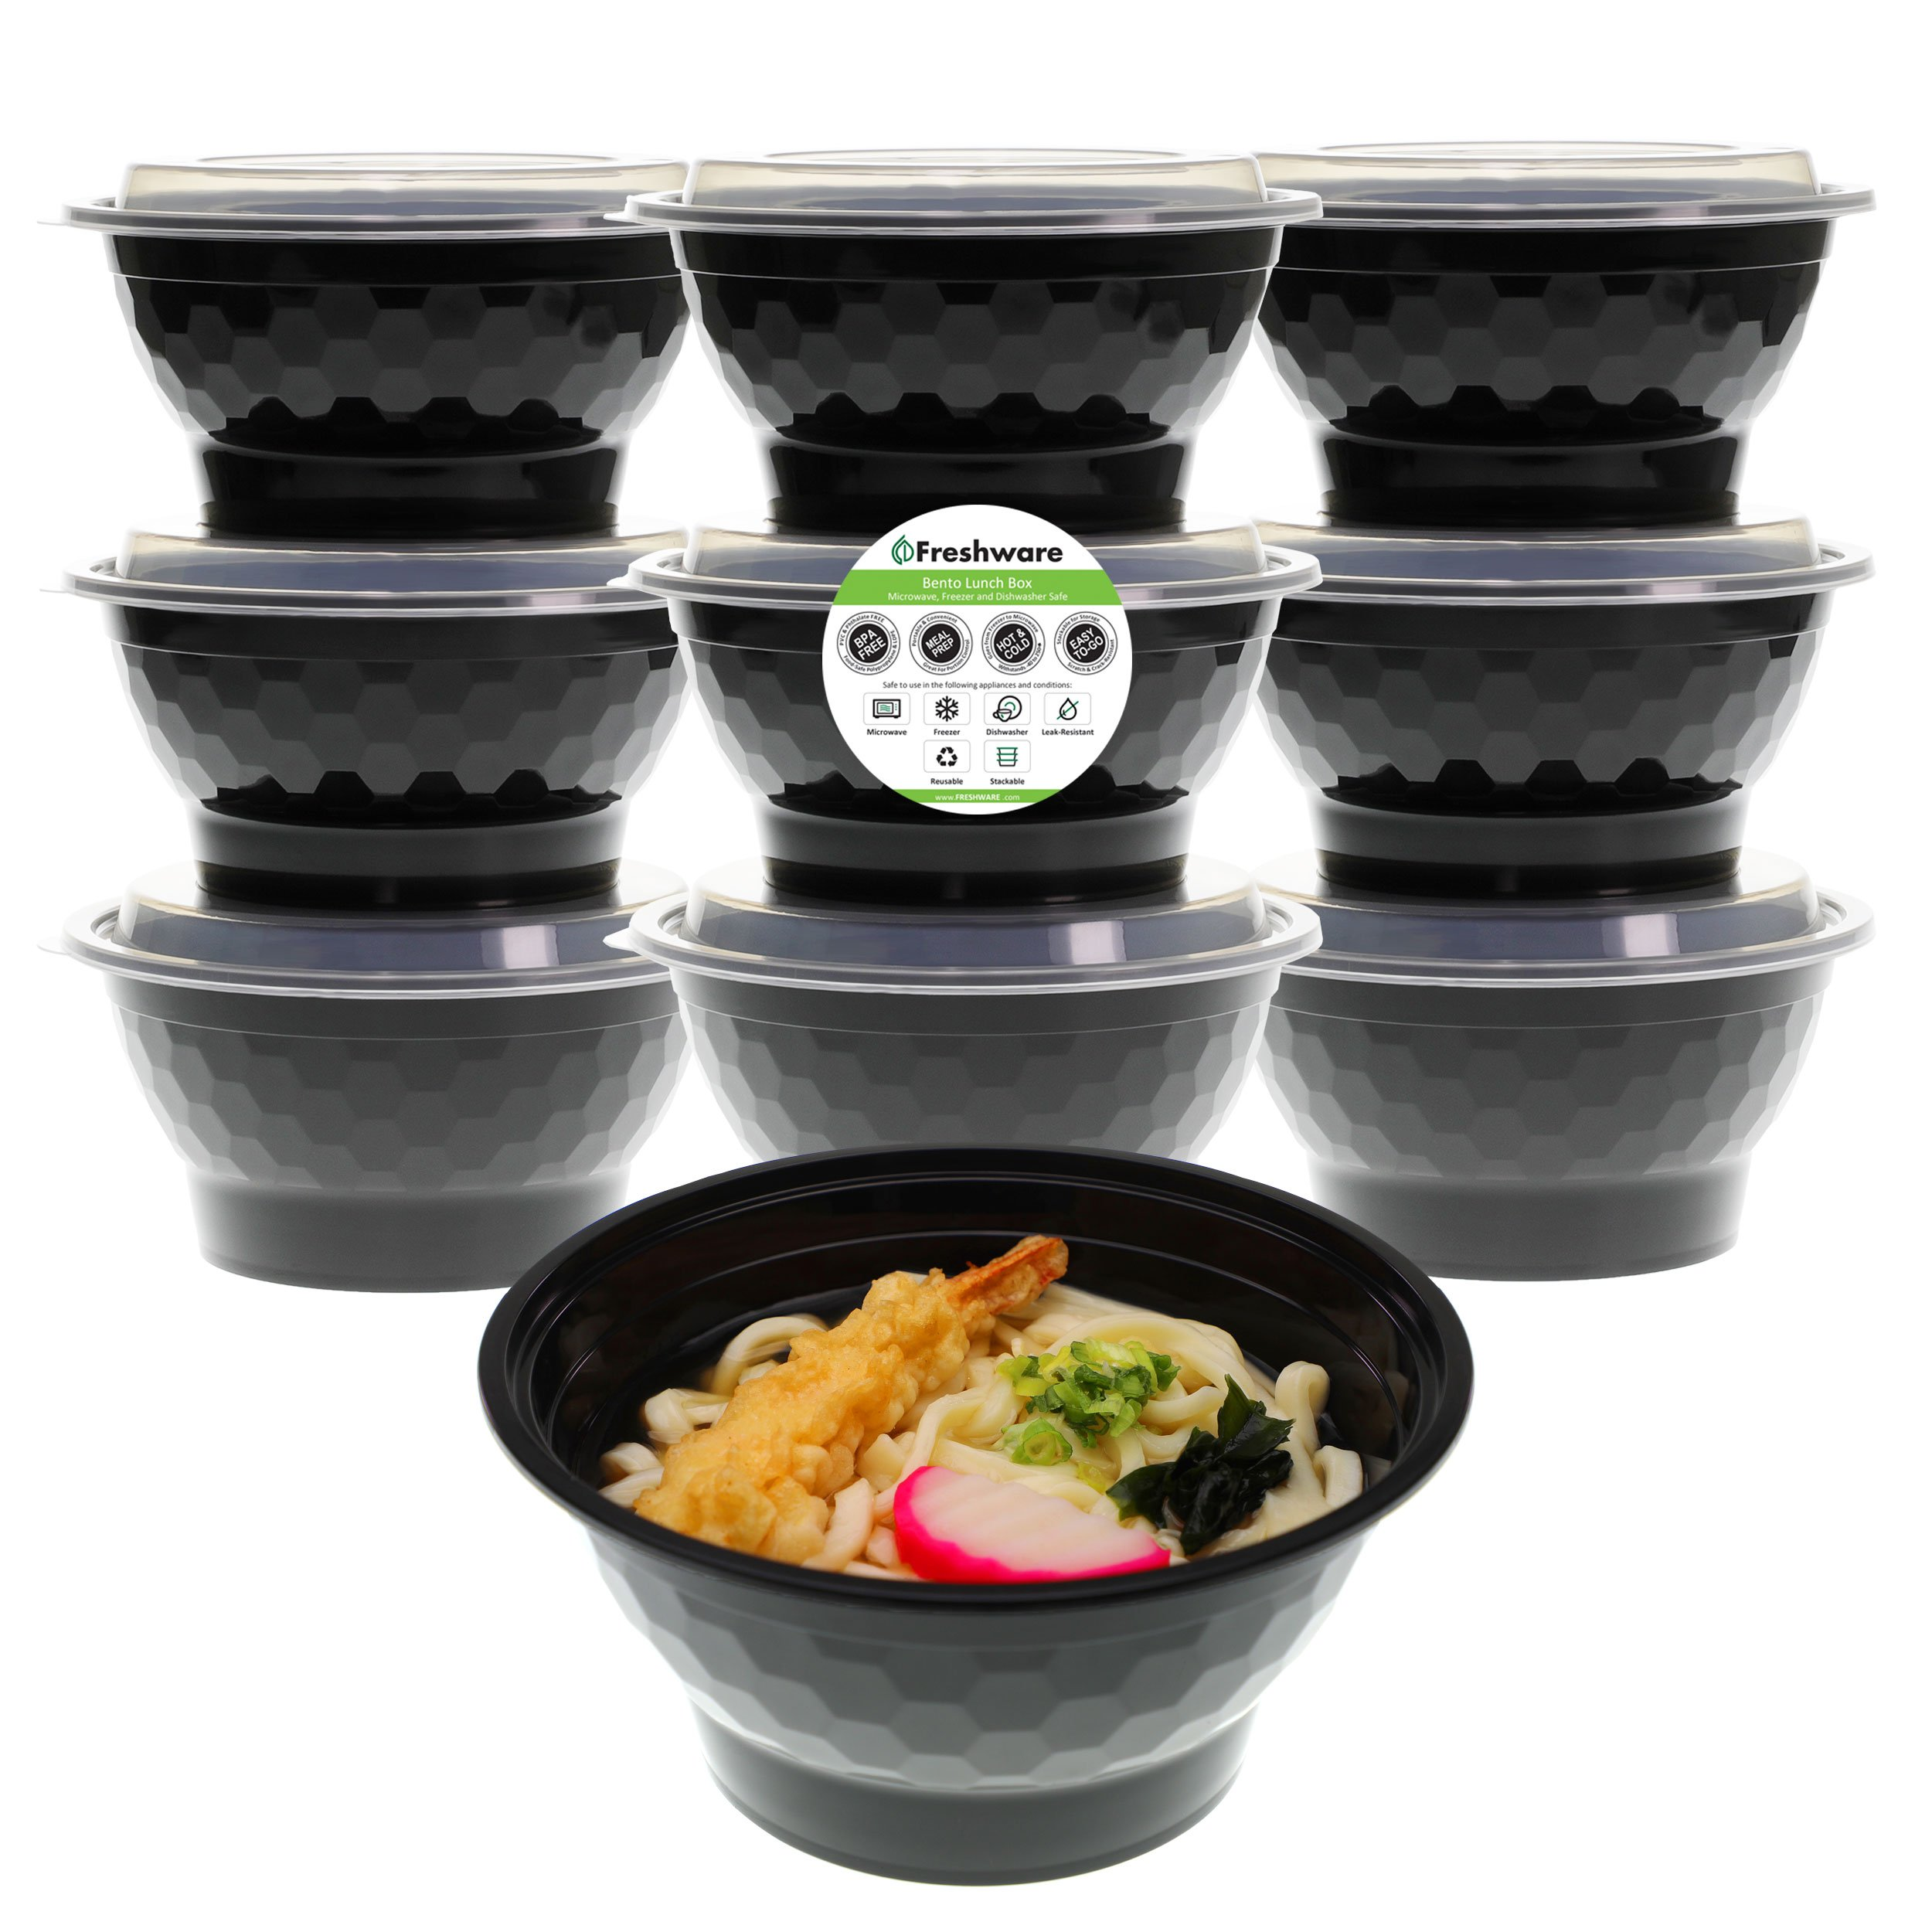 Freshware Meal Prep Containers [10 Pack] Bowls with Lids, Food Storage Bento Box | BPA Free | Stackable | Lunch Boxes, Microwave/Dishwasher/Freezer Safe, Portion Control, 21 day fix (42 oz) by Freshware